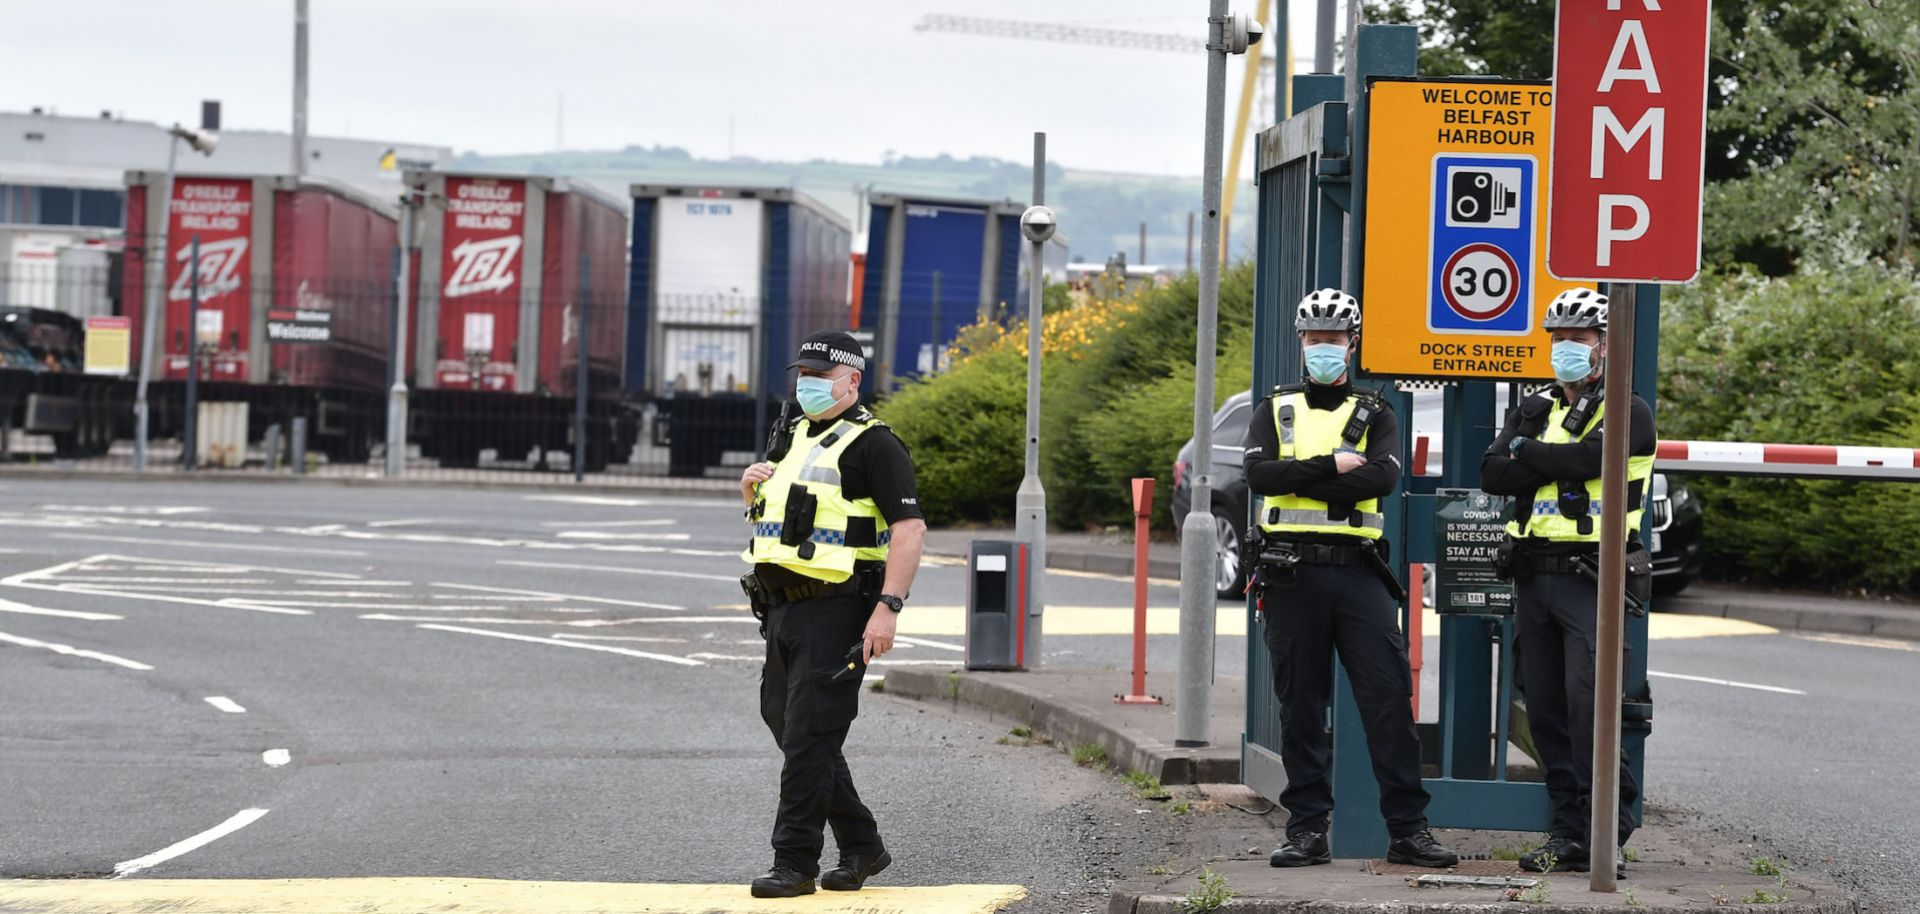 Police officers stand guard as pro-British loyalists protest against the Northern Ireland Protocol at Belfast Harbour on July 3, 2021.